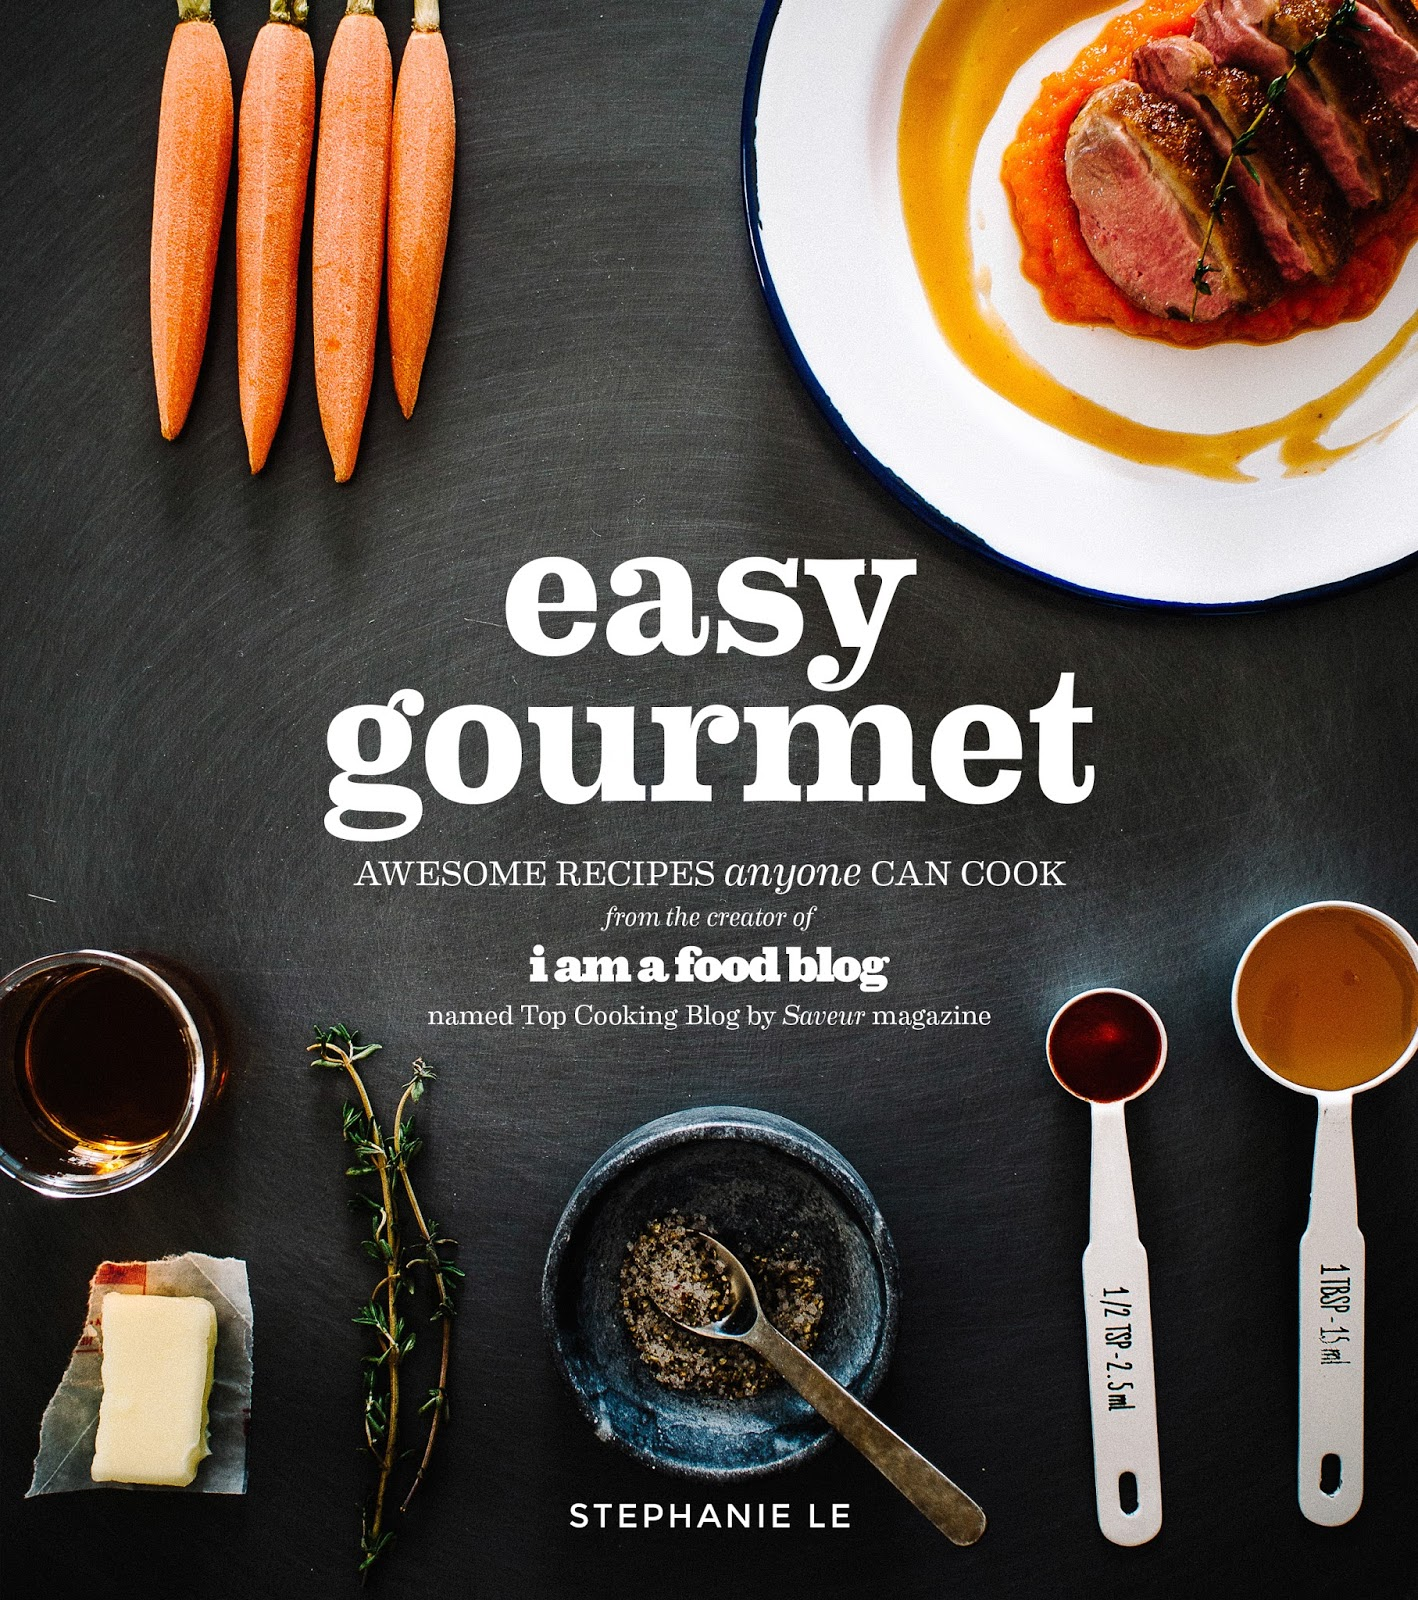 easy gourmet cookbook review